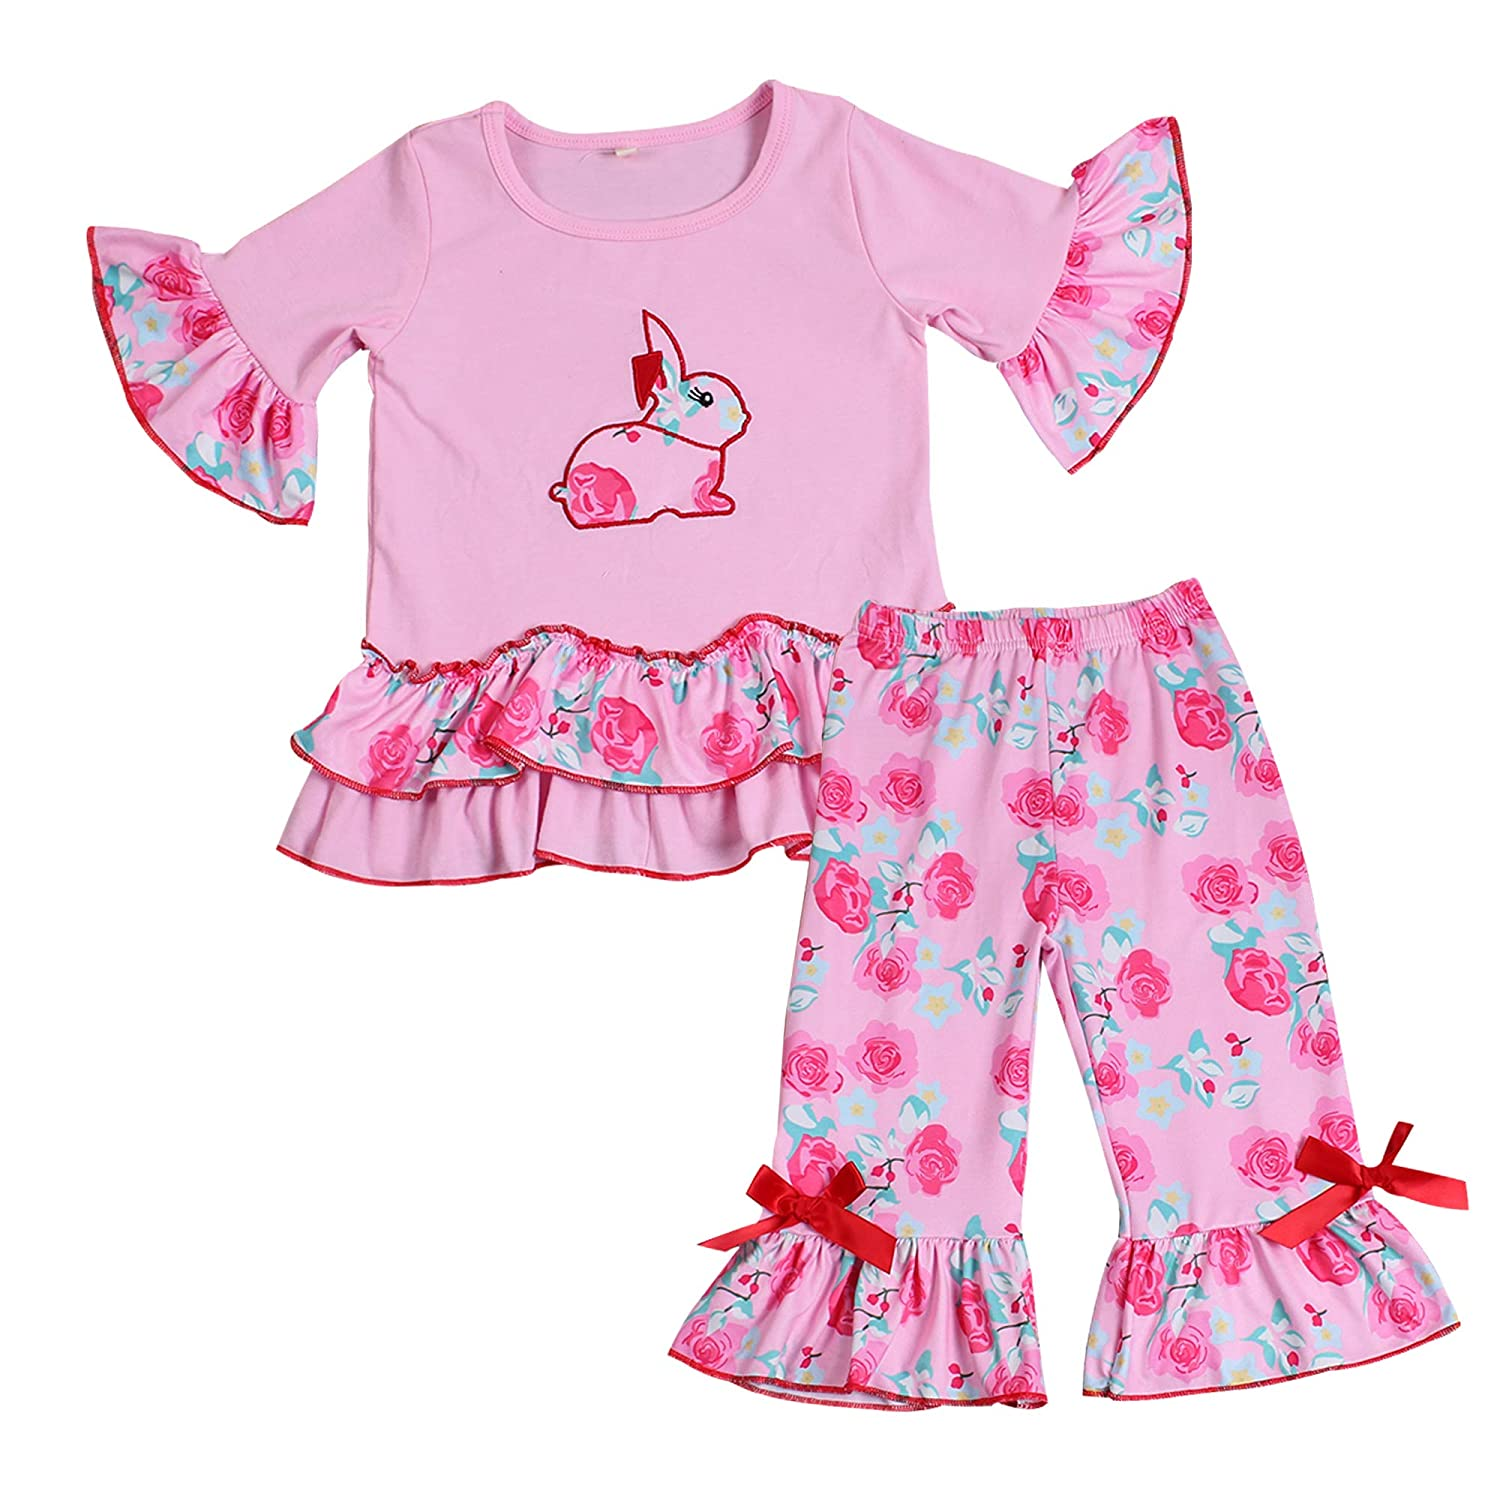 Easter Clothing Baby Girls Playwear Set with Embroidery Bunny Rabbit Ruffle Capris Set